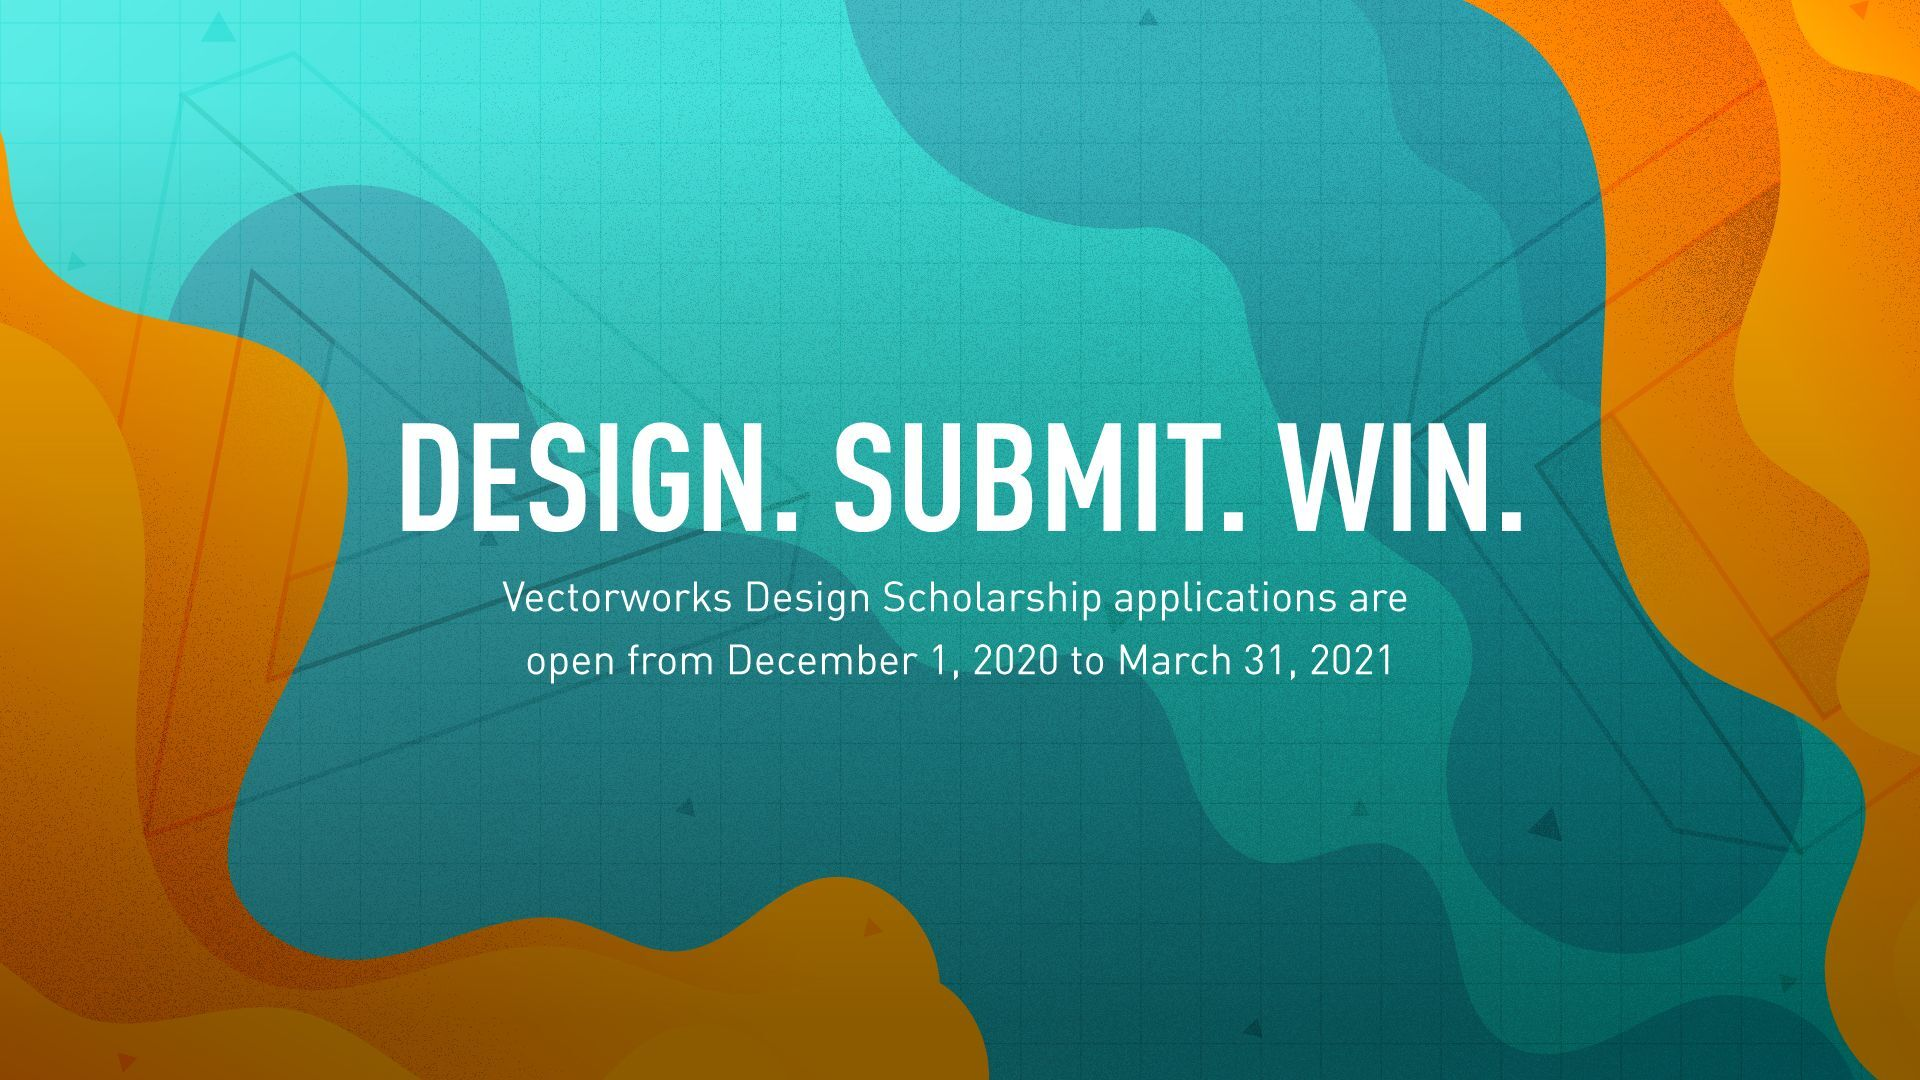 Fifth Vectorworks Design Scholarship Opens for Submissions